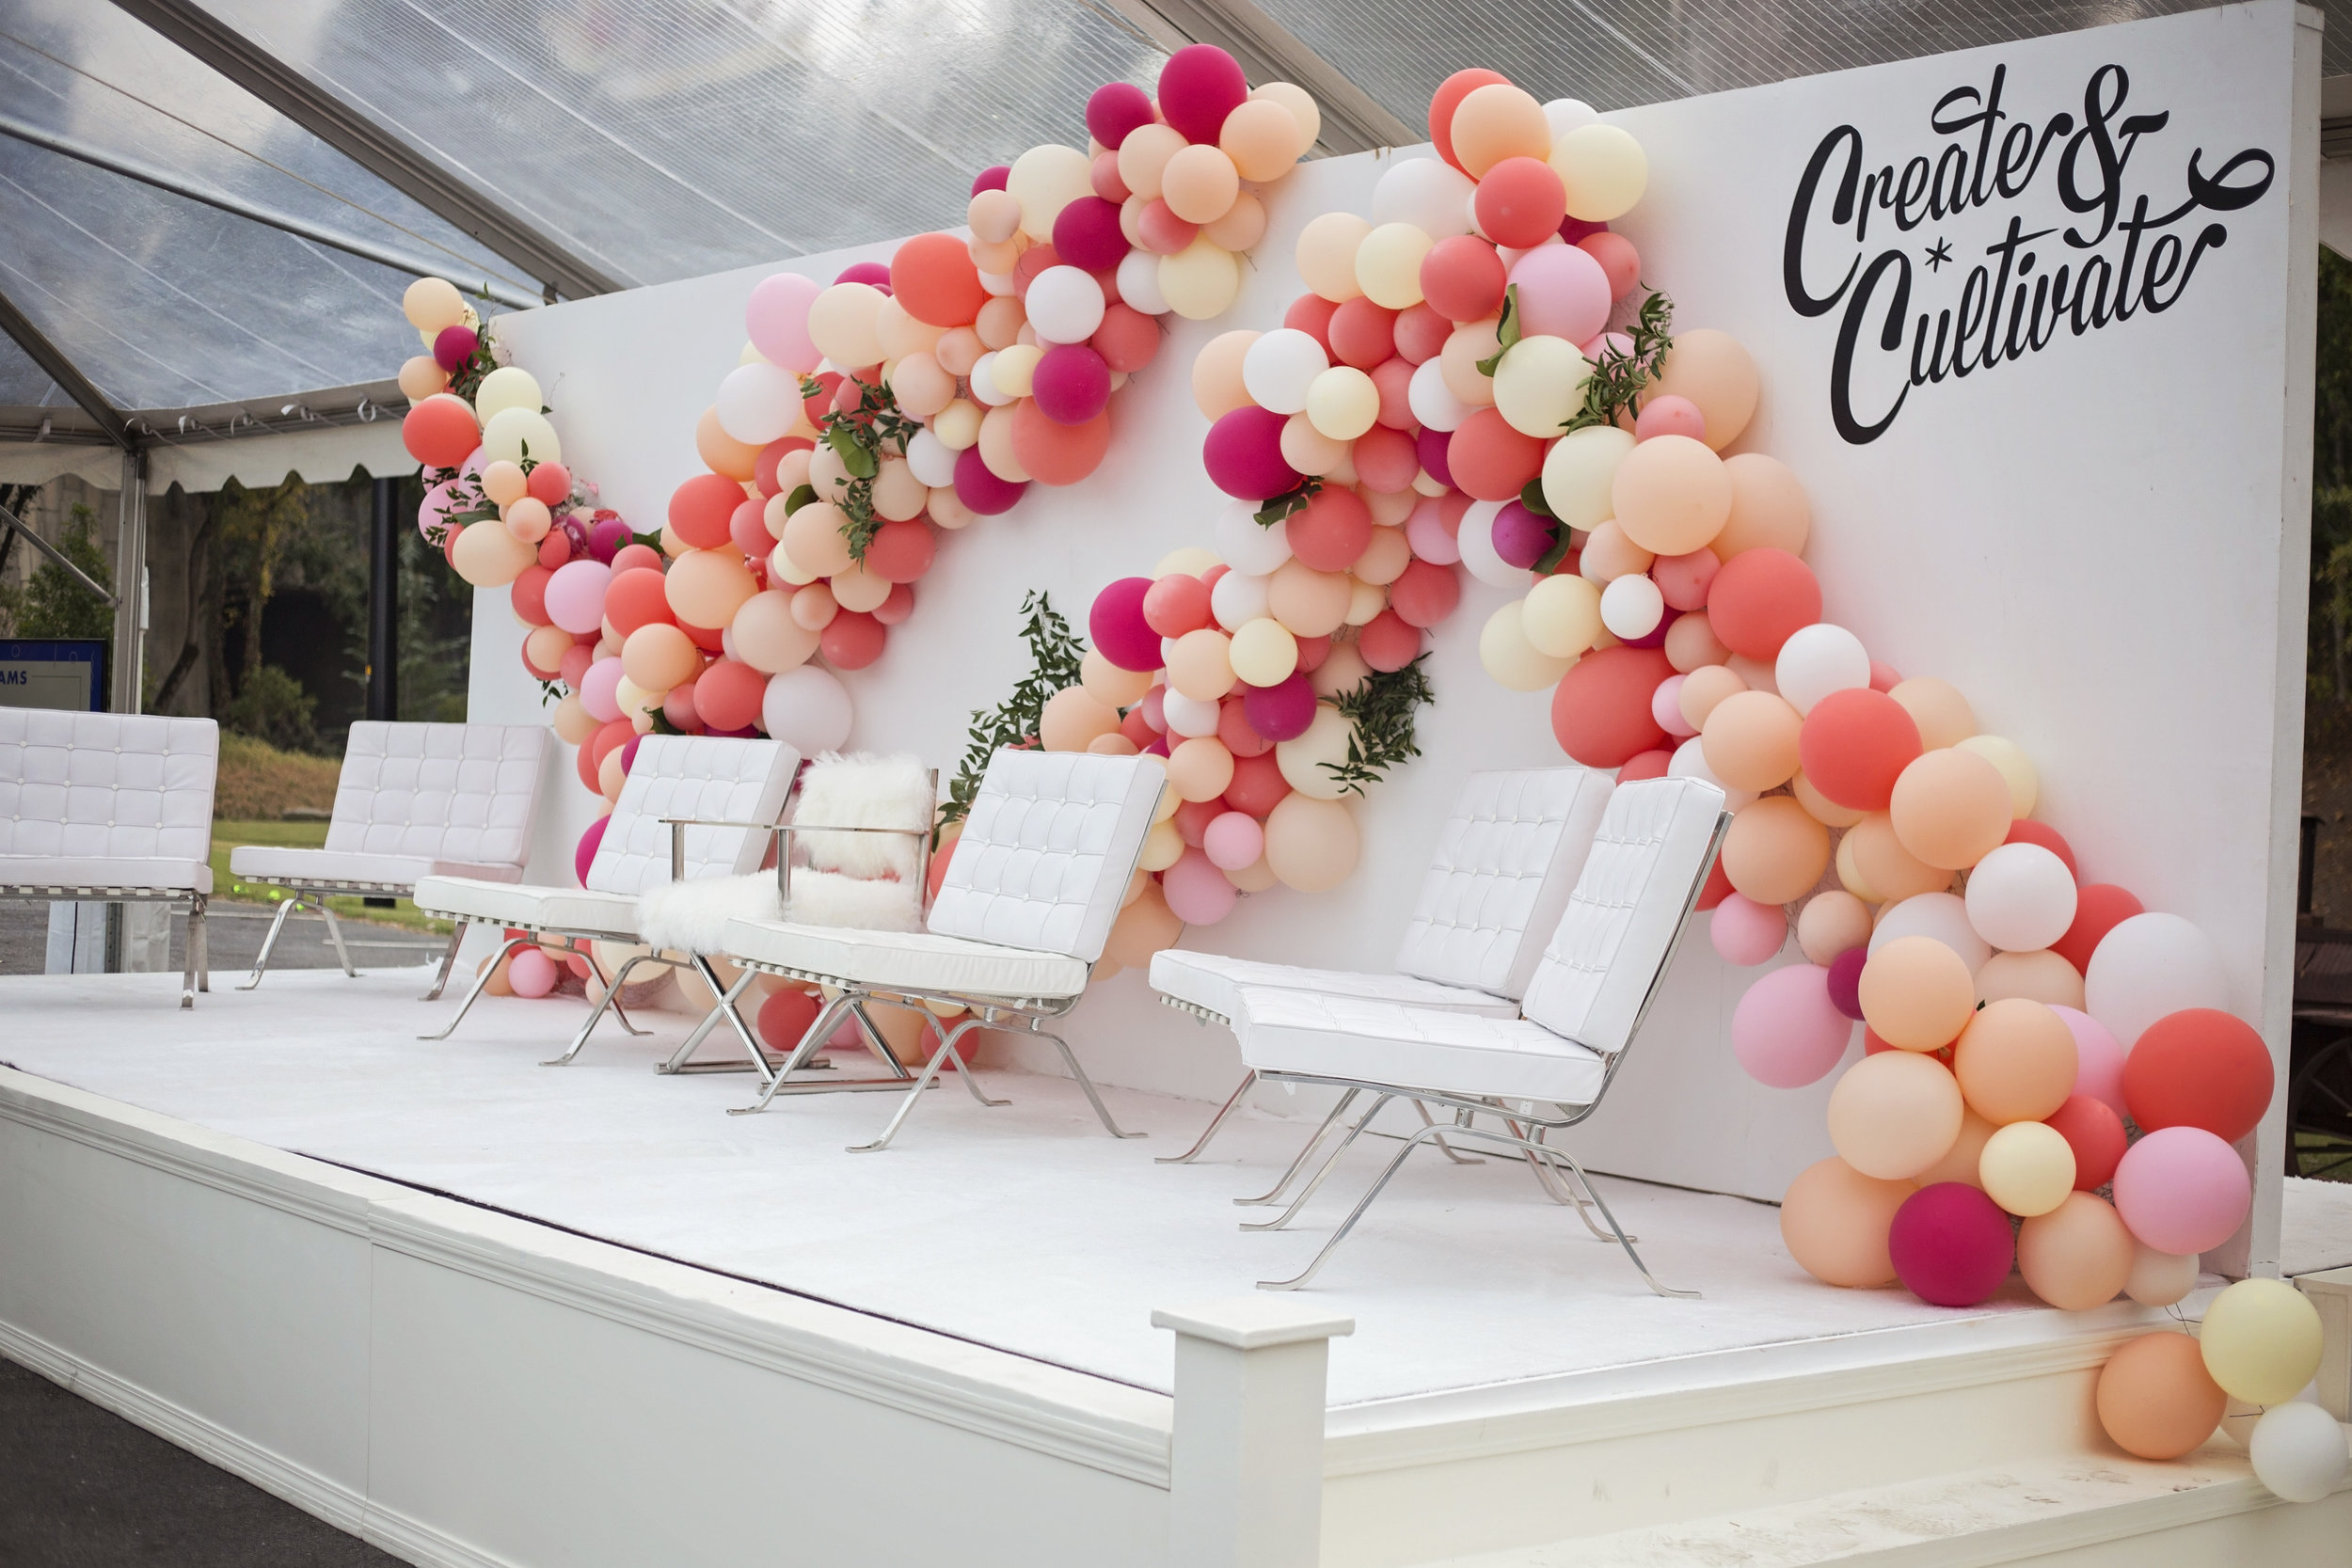 create and cultivate atlanta - belong magazine blog